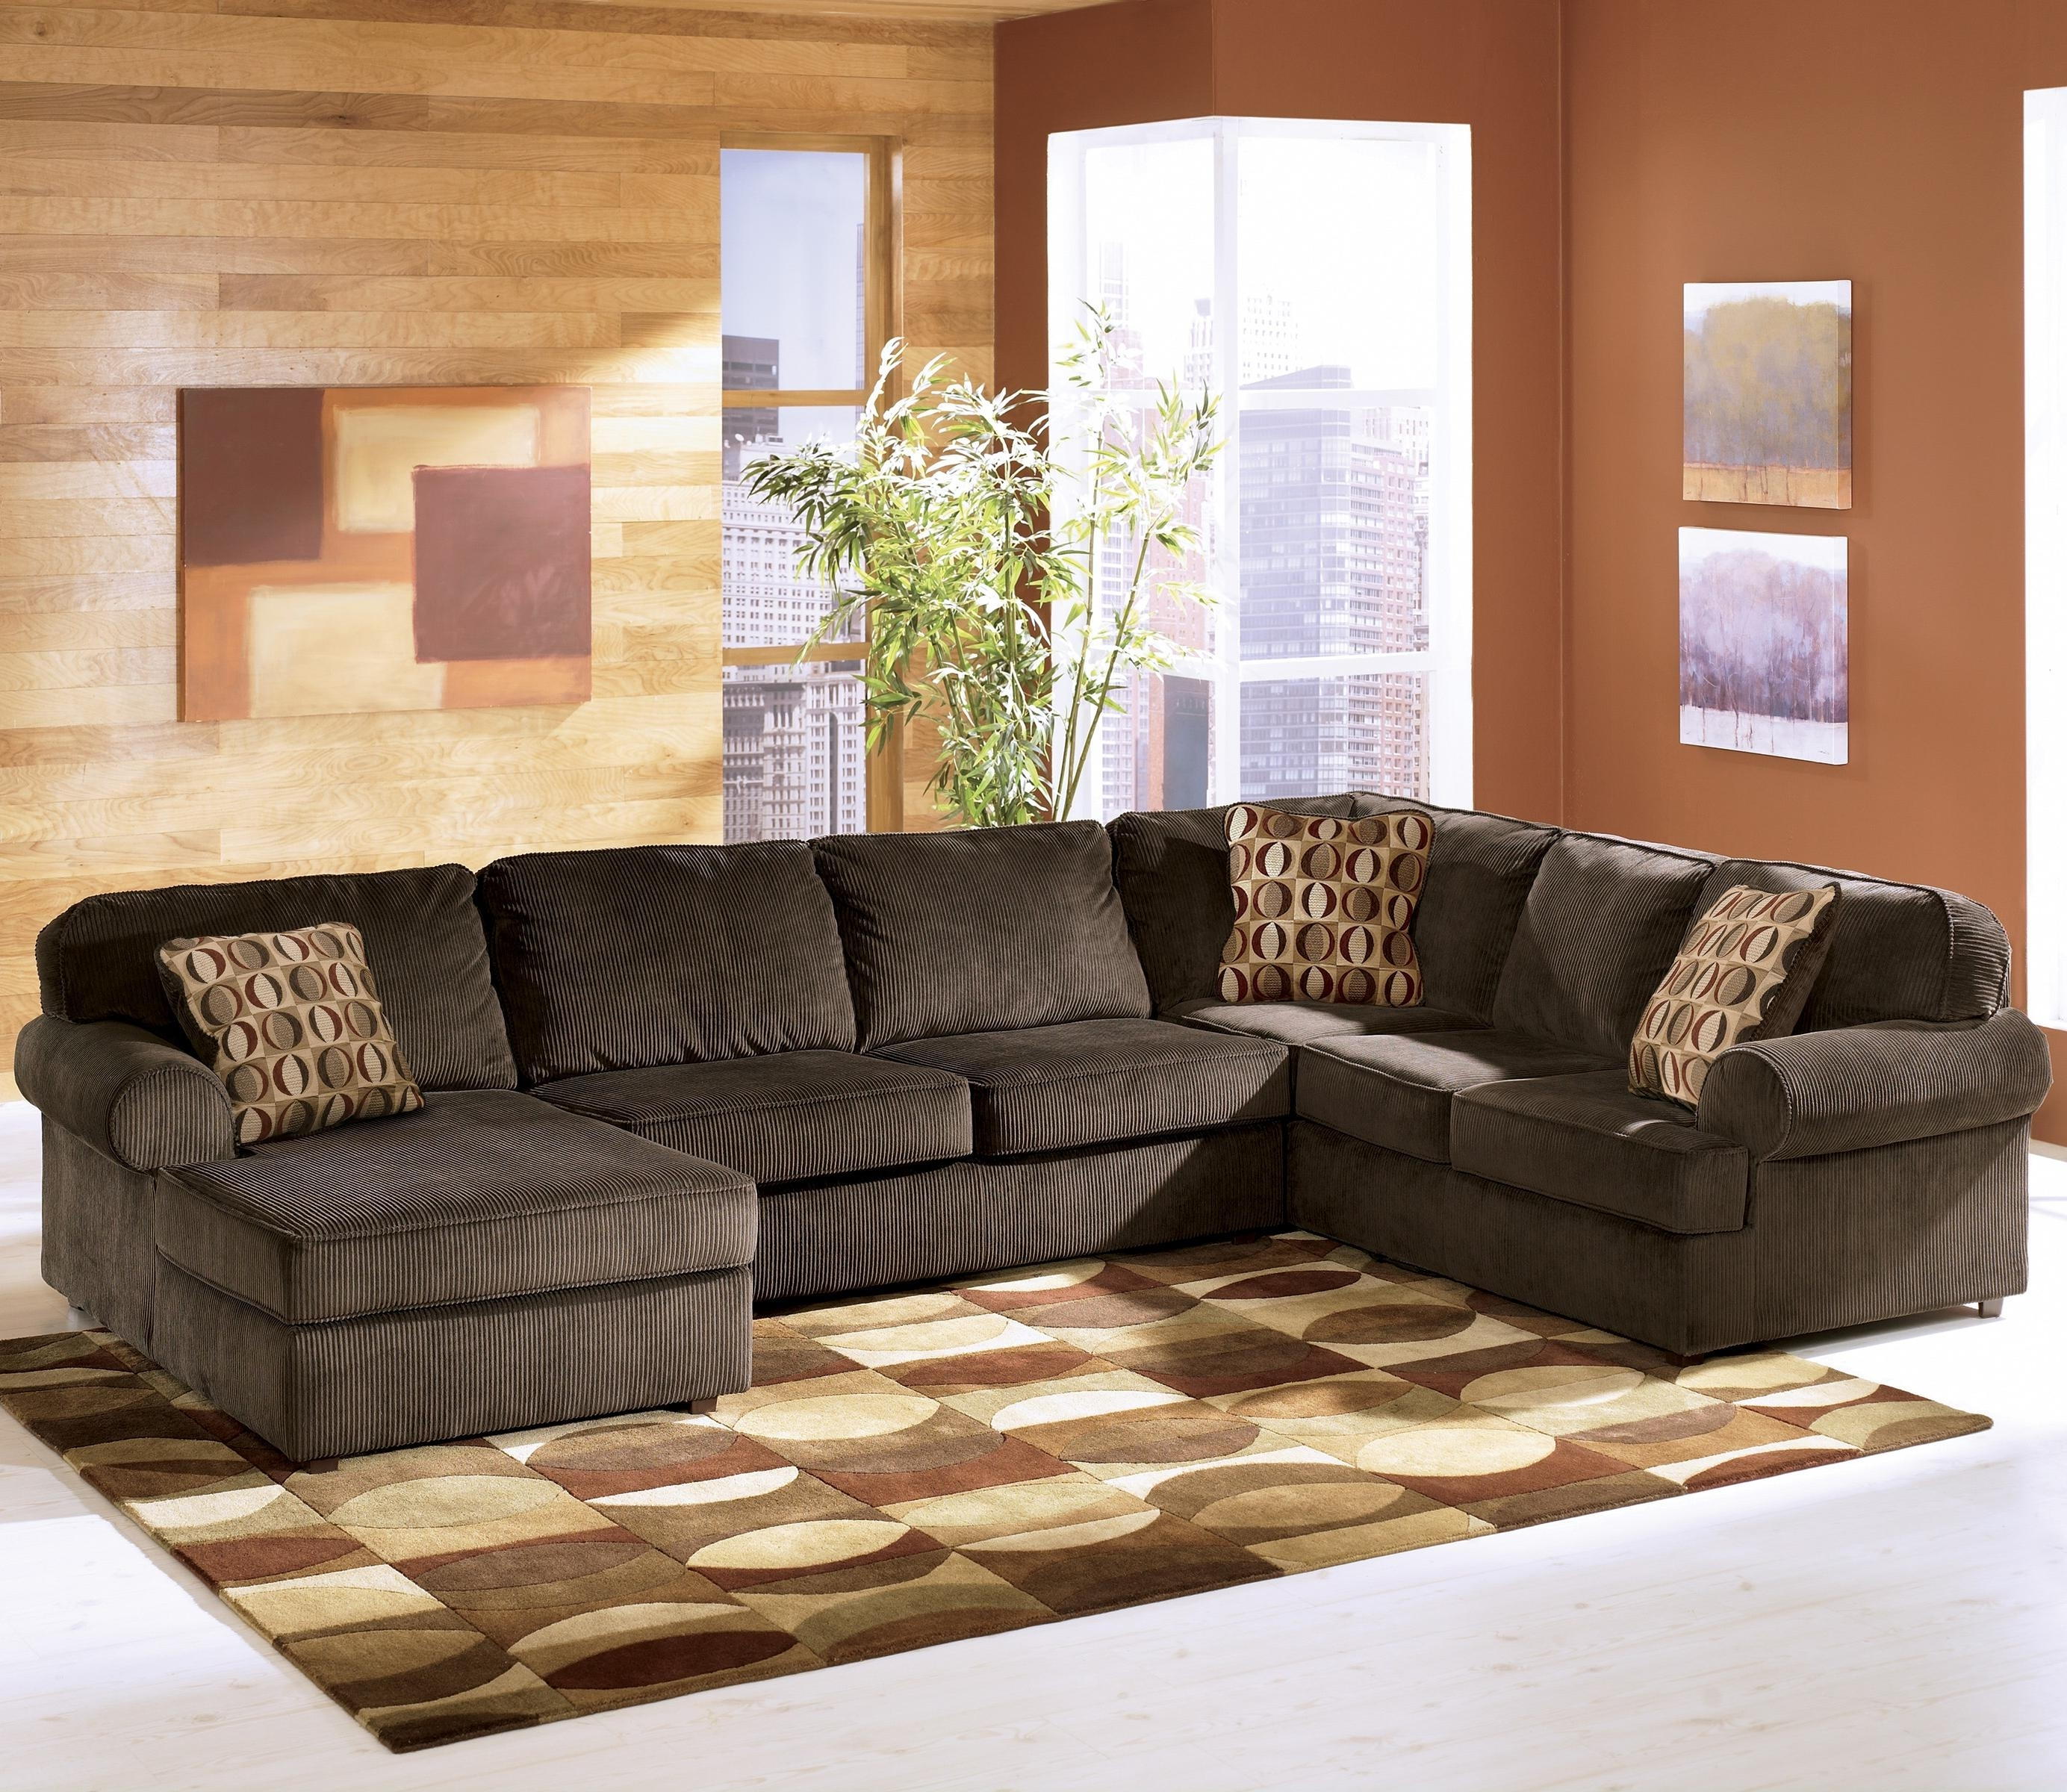 3 Piece Sectional Sofas With Chaise Regarding Widely Used Ashley Furniture Vista – Chocolate Casual 3 Piece Sectional With (View 2 of 15)